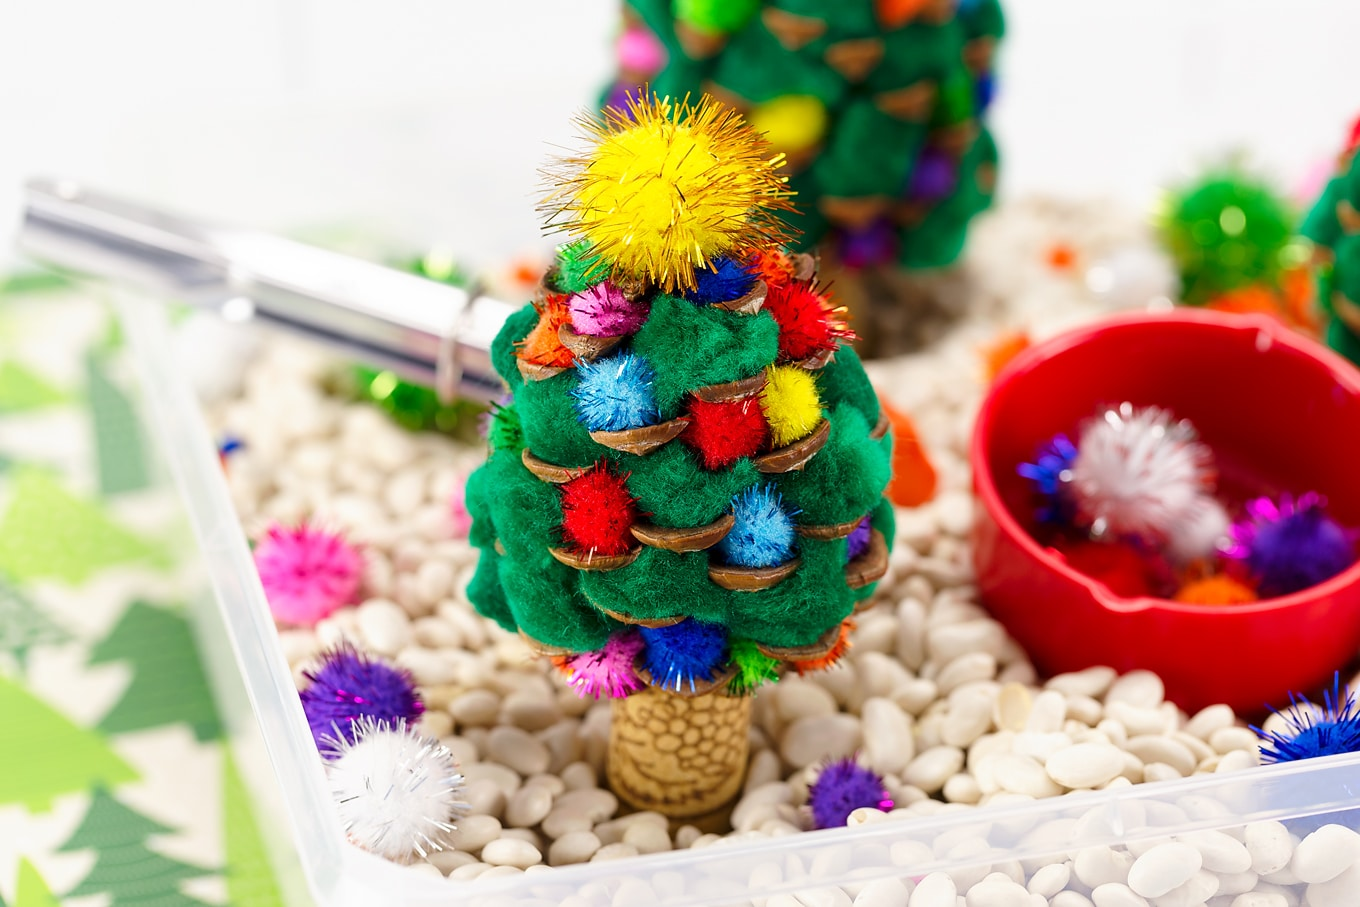 Pine Cone Christmas Trees in a Sensory Bin